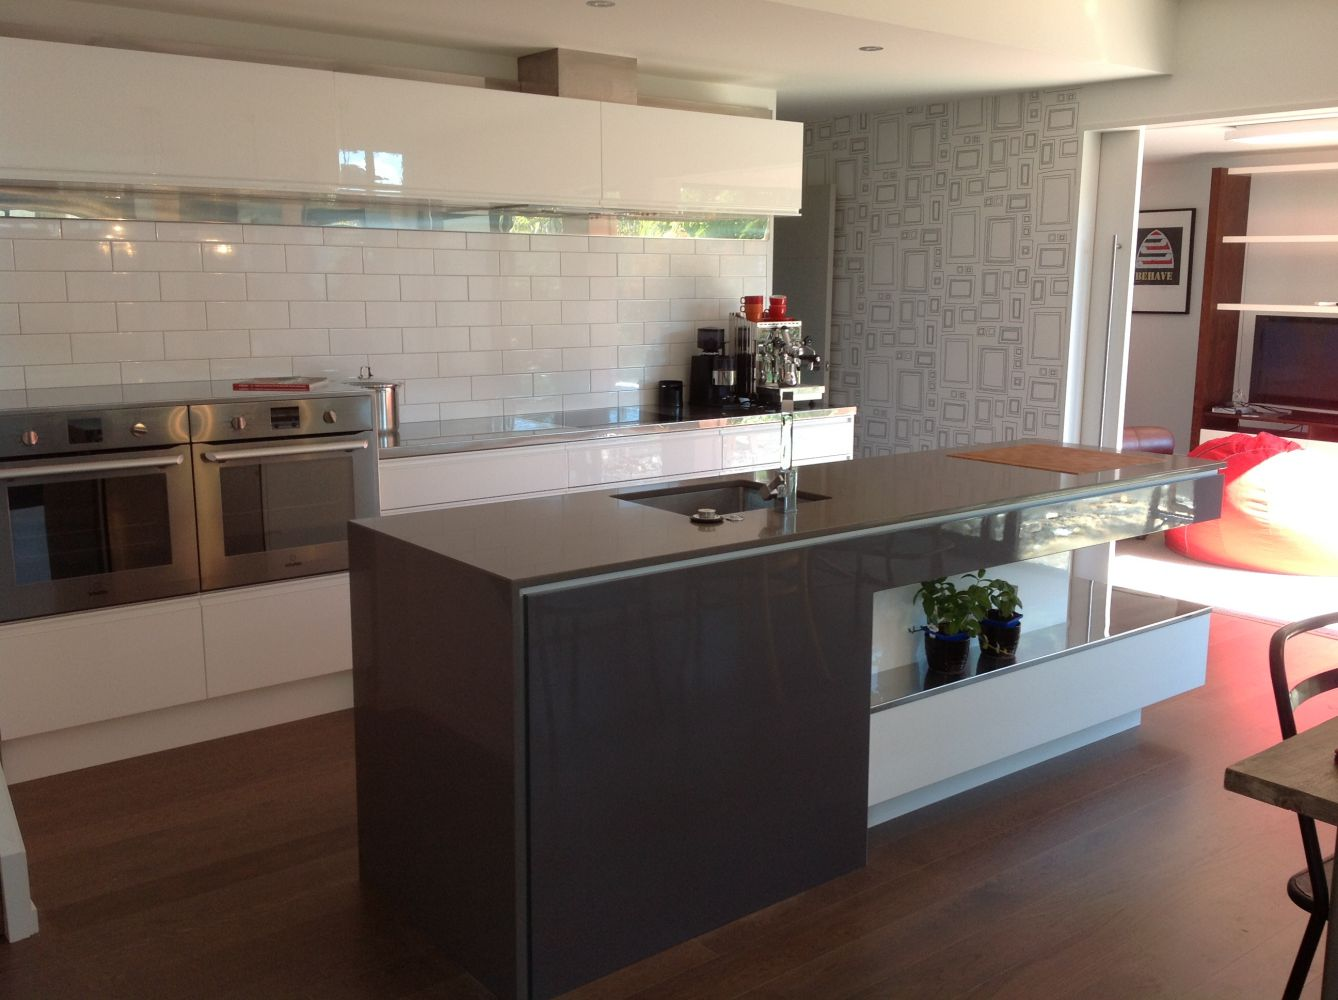 A new kitchen layout in Dunedin